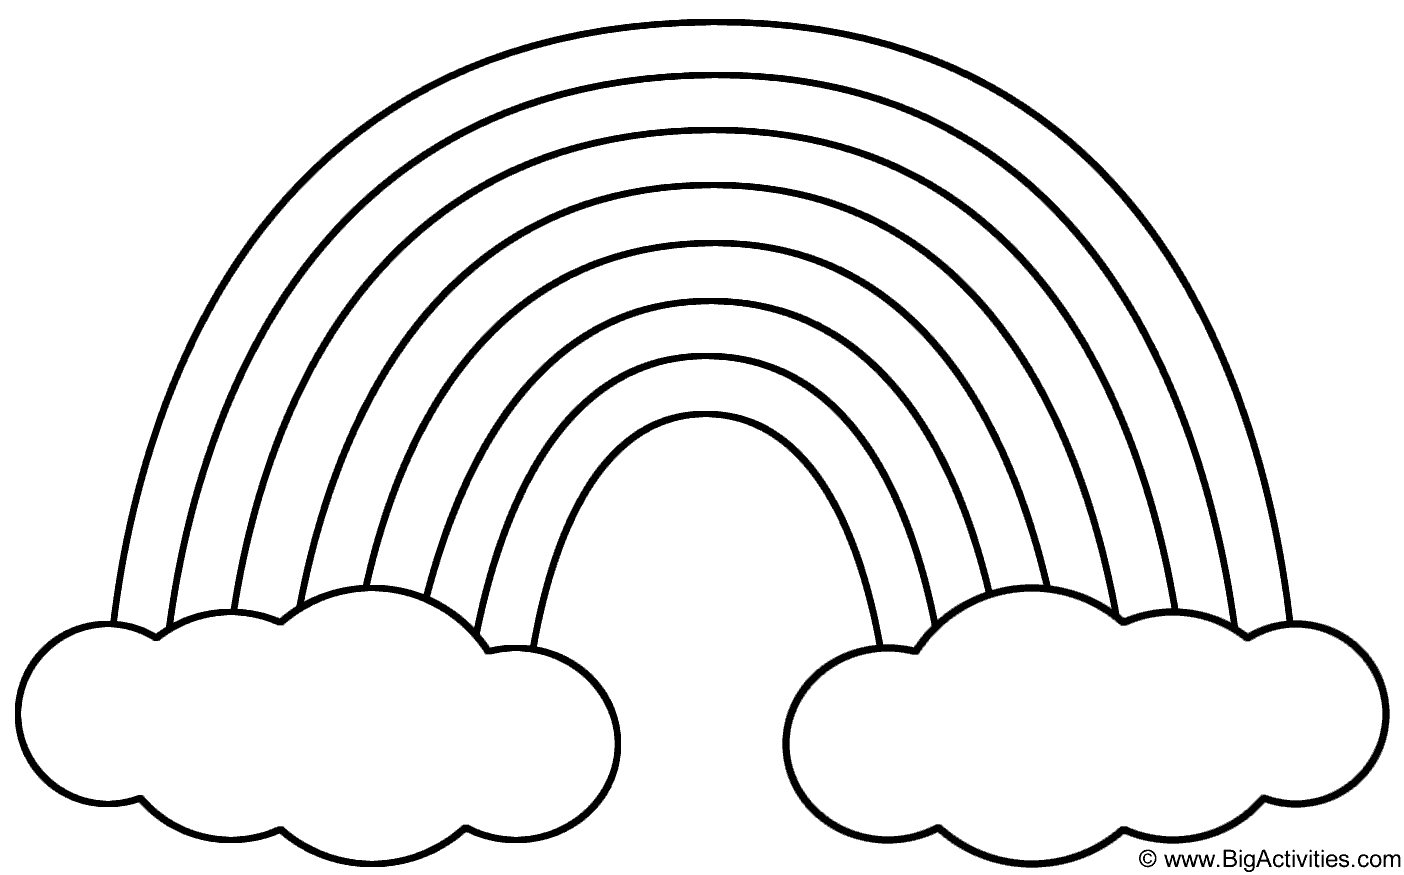 Free Printable Cloud Coloring Pages For Kids | Coloring pages for ... | 875x1404